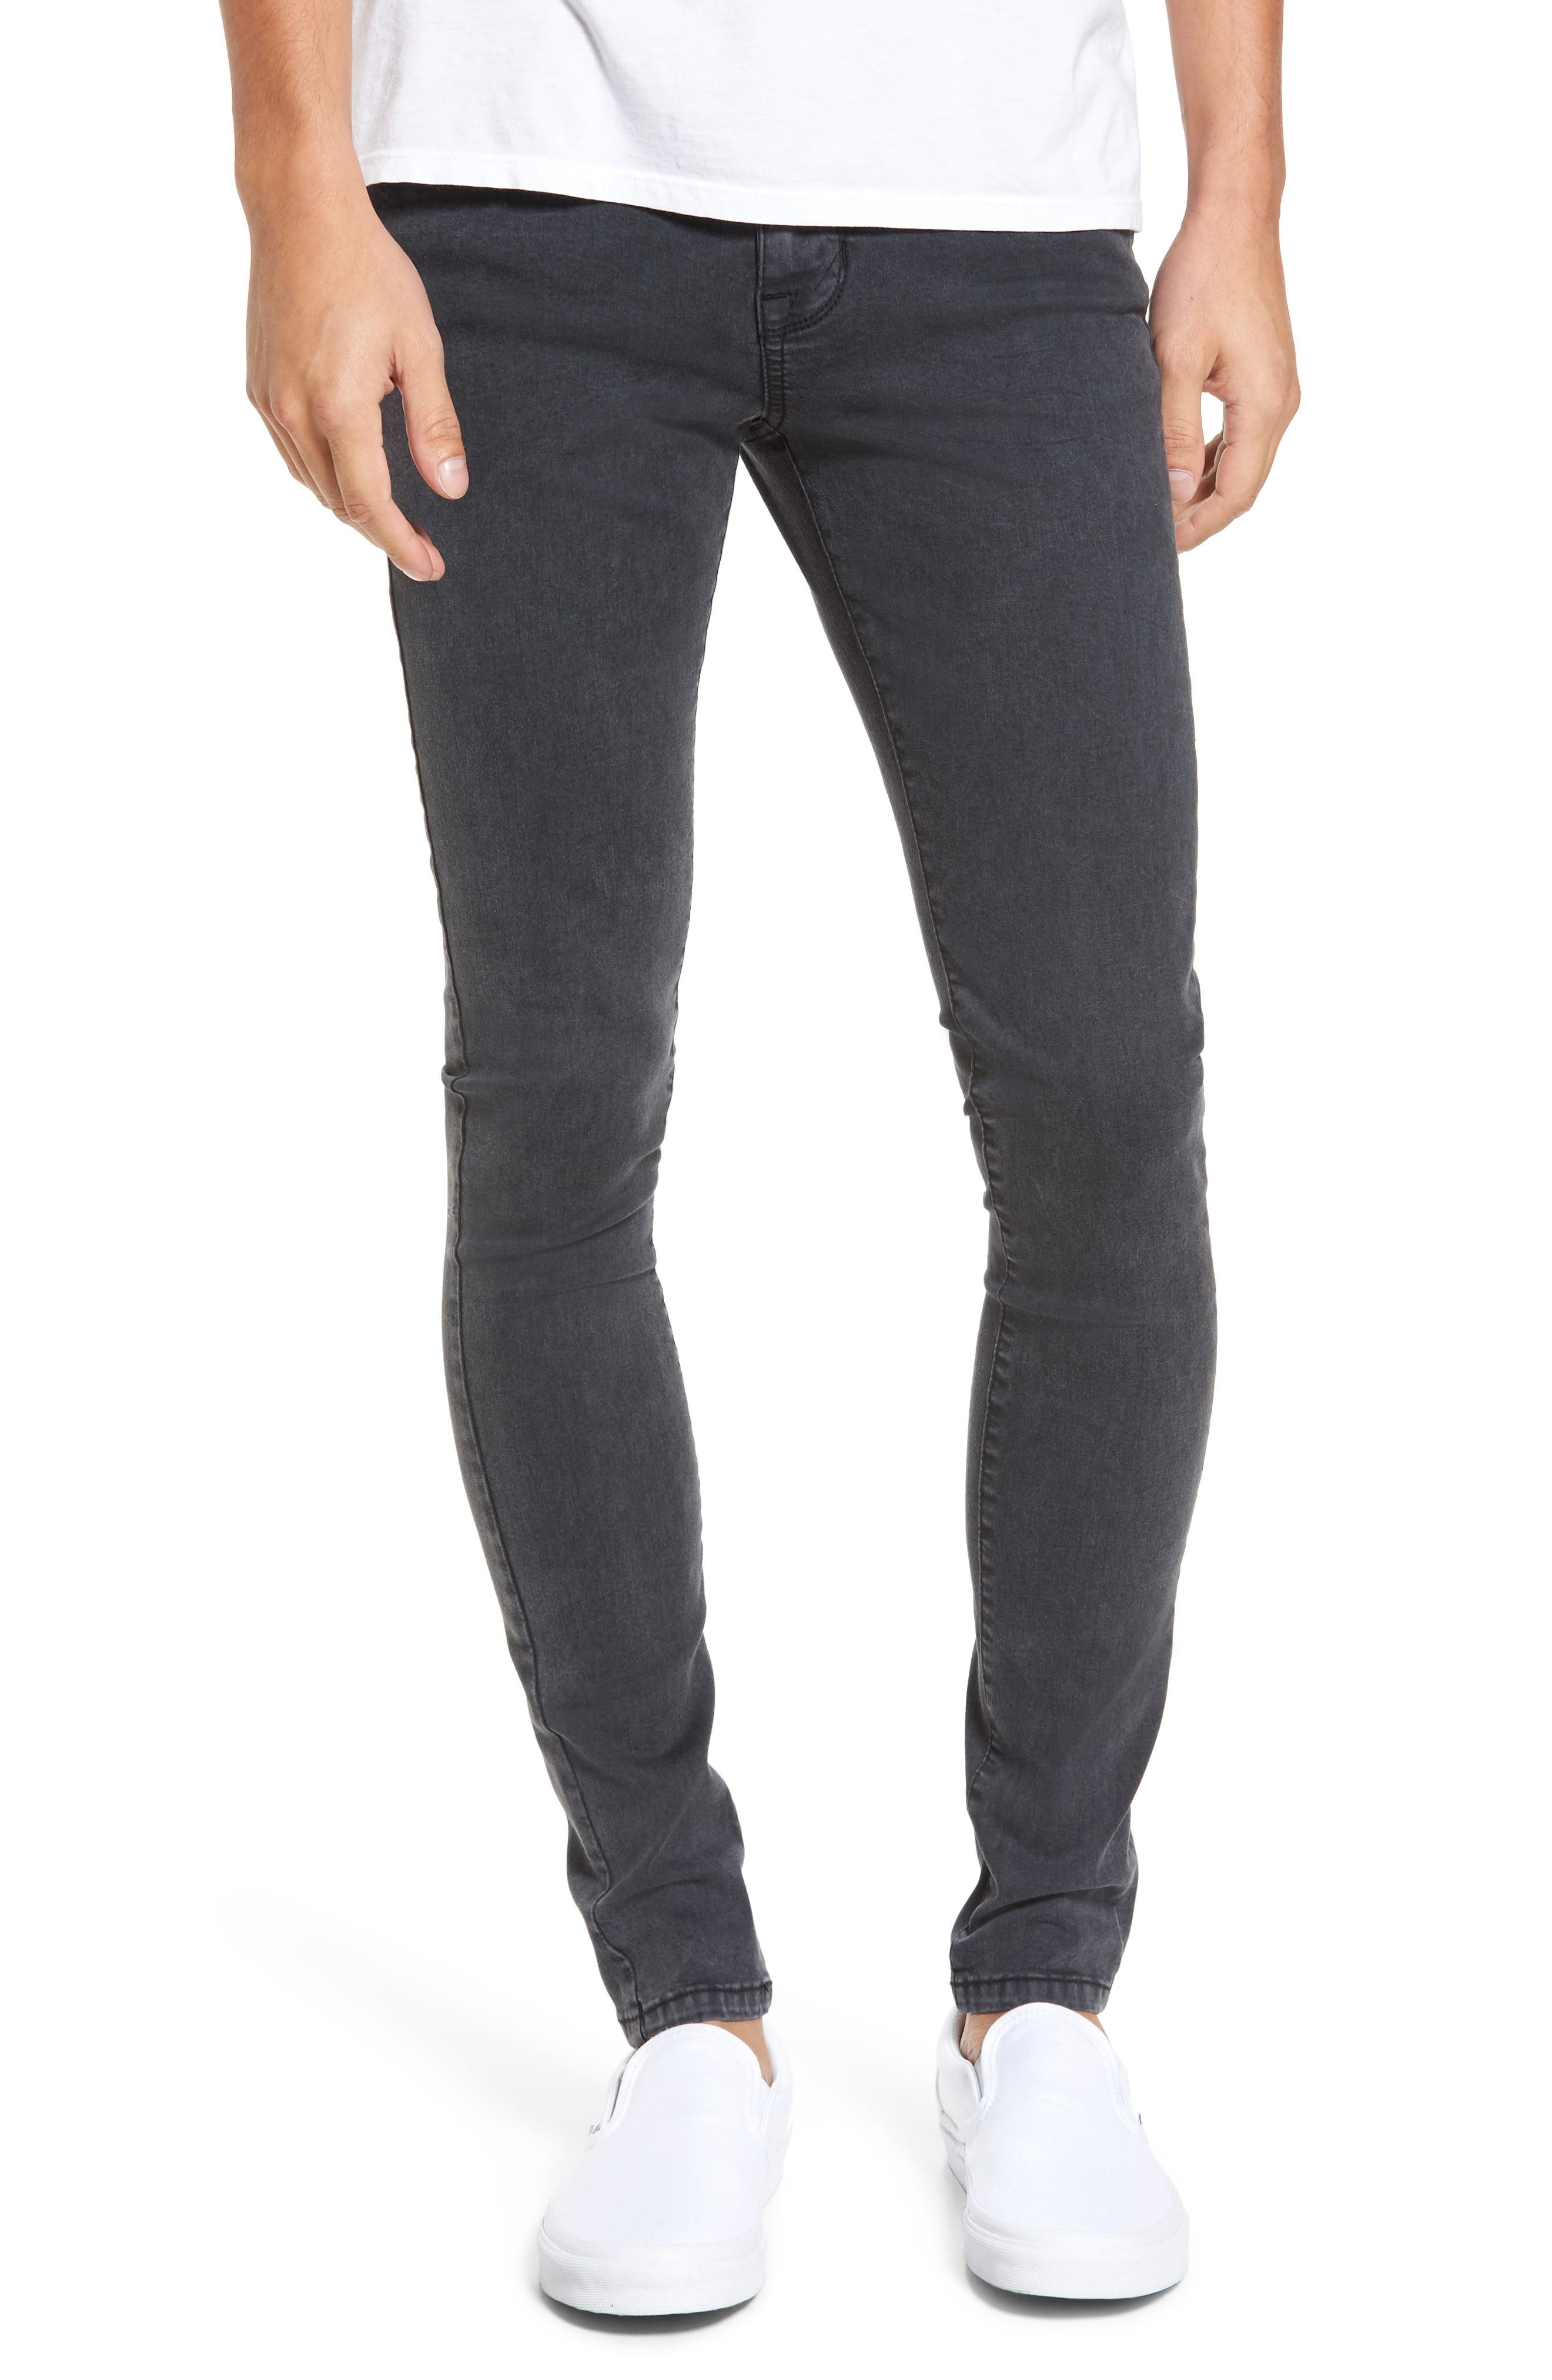 Leroy Slim Fit Jeans,                             Main thumbnail 1, color,                             Grey Lush